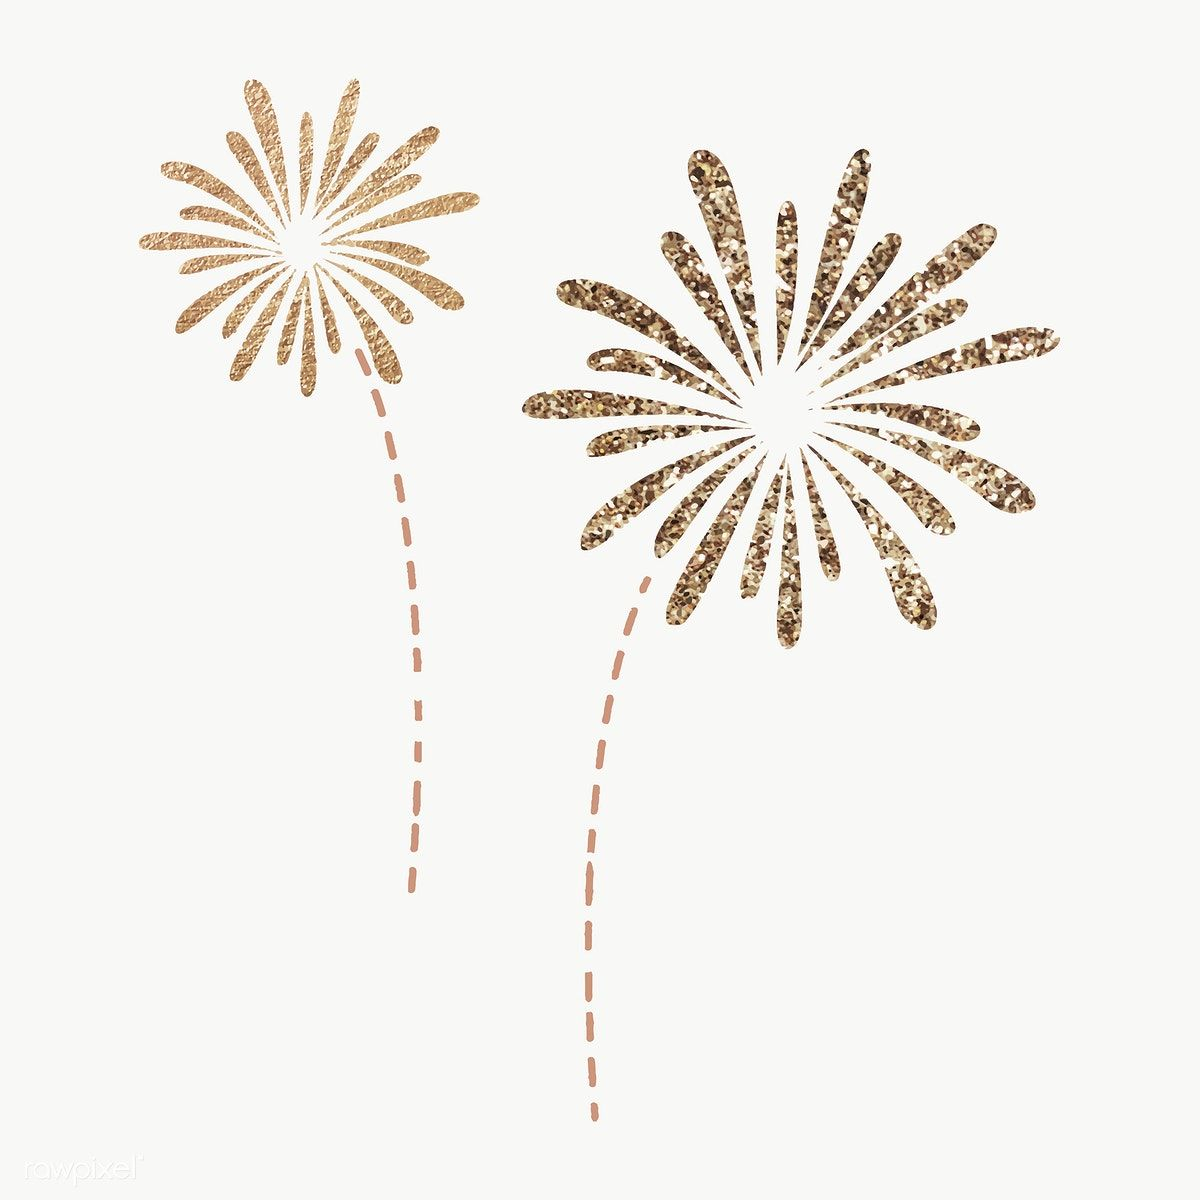 New Year Fireworks Doodle On Transparent Free Image By Rawpixel Com Marinemynt Fireworks Images New Year Fireworks Fireworks